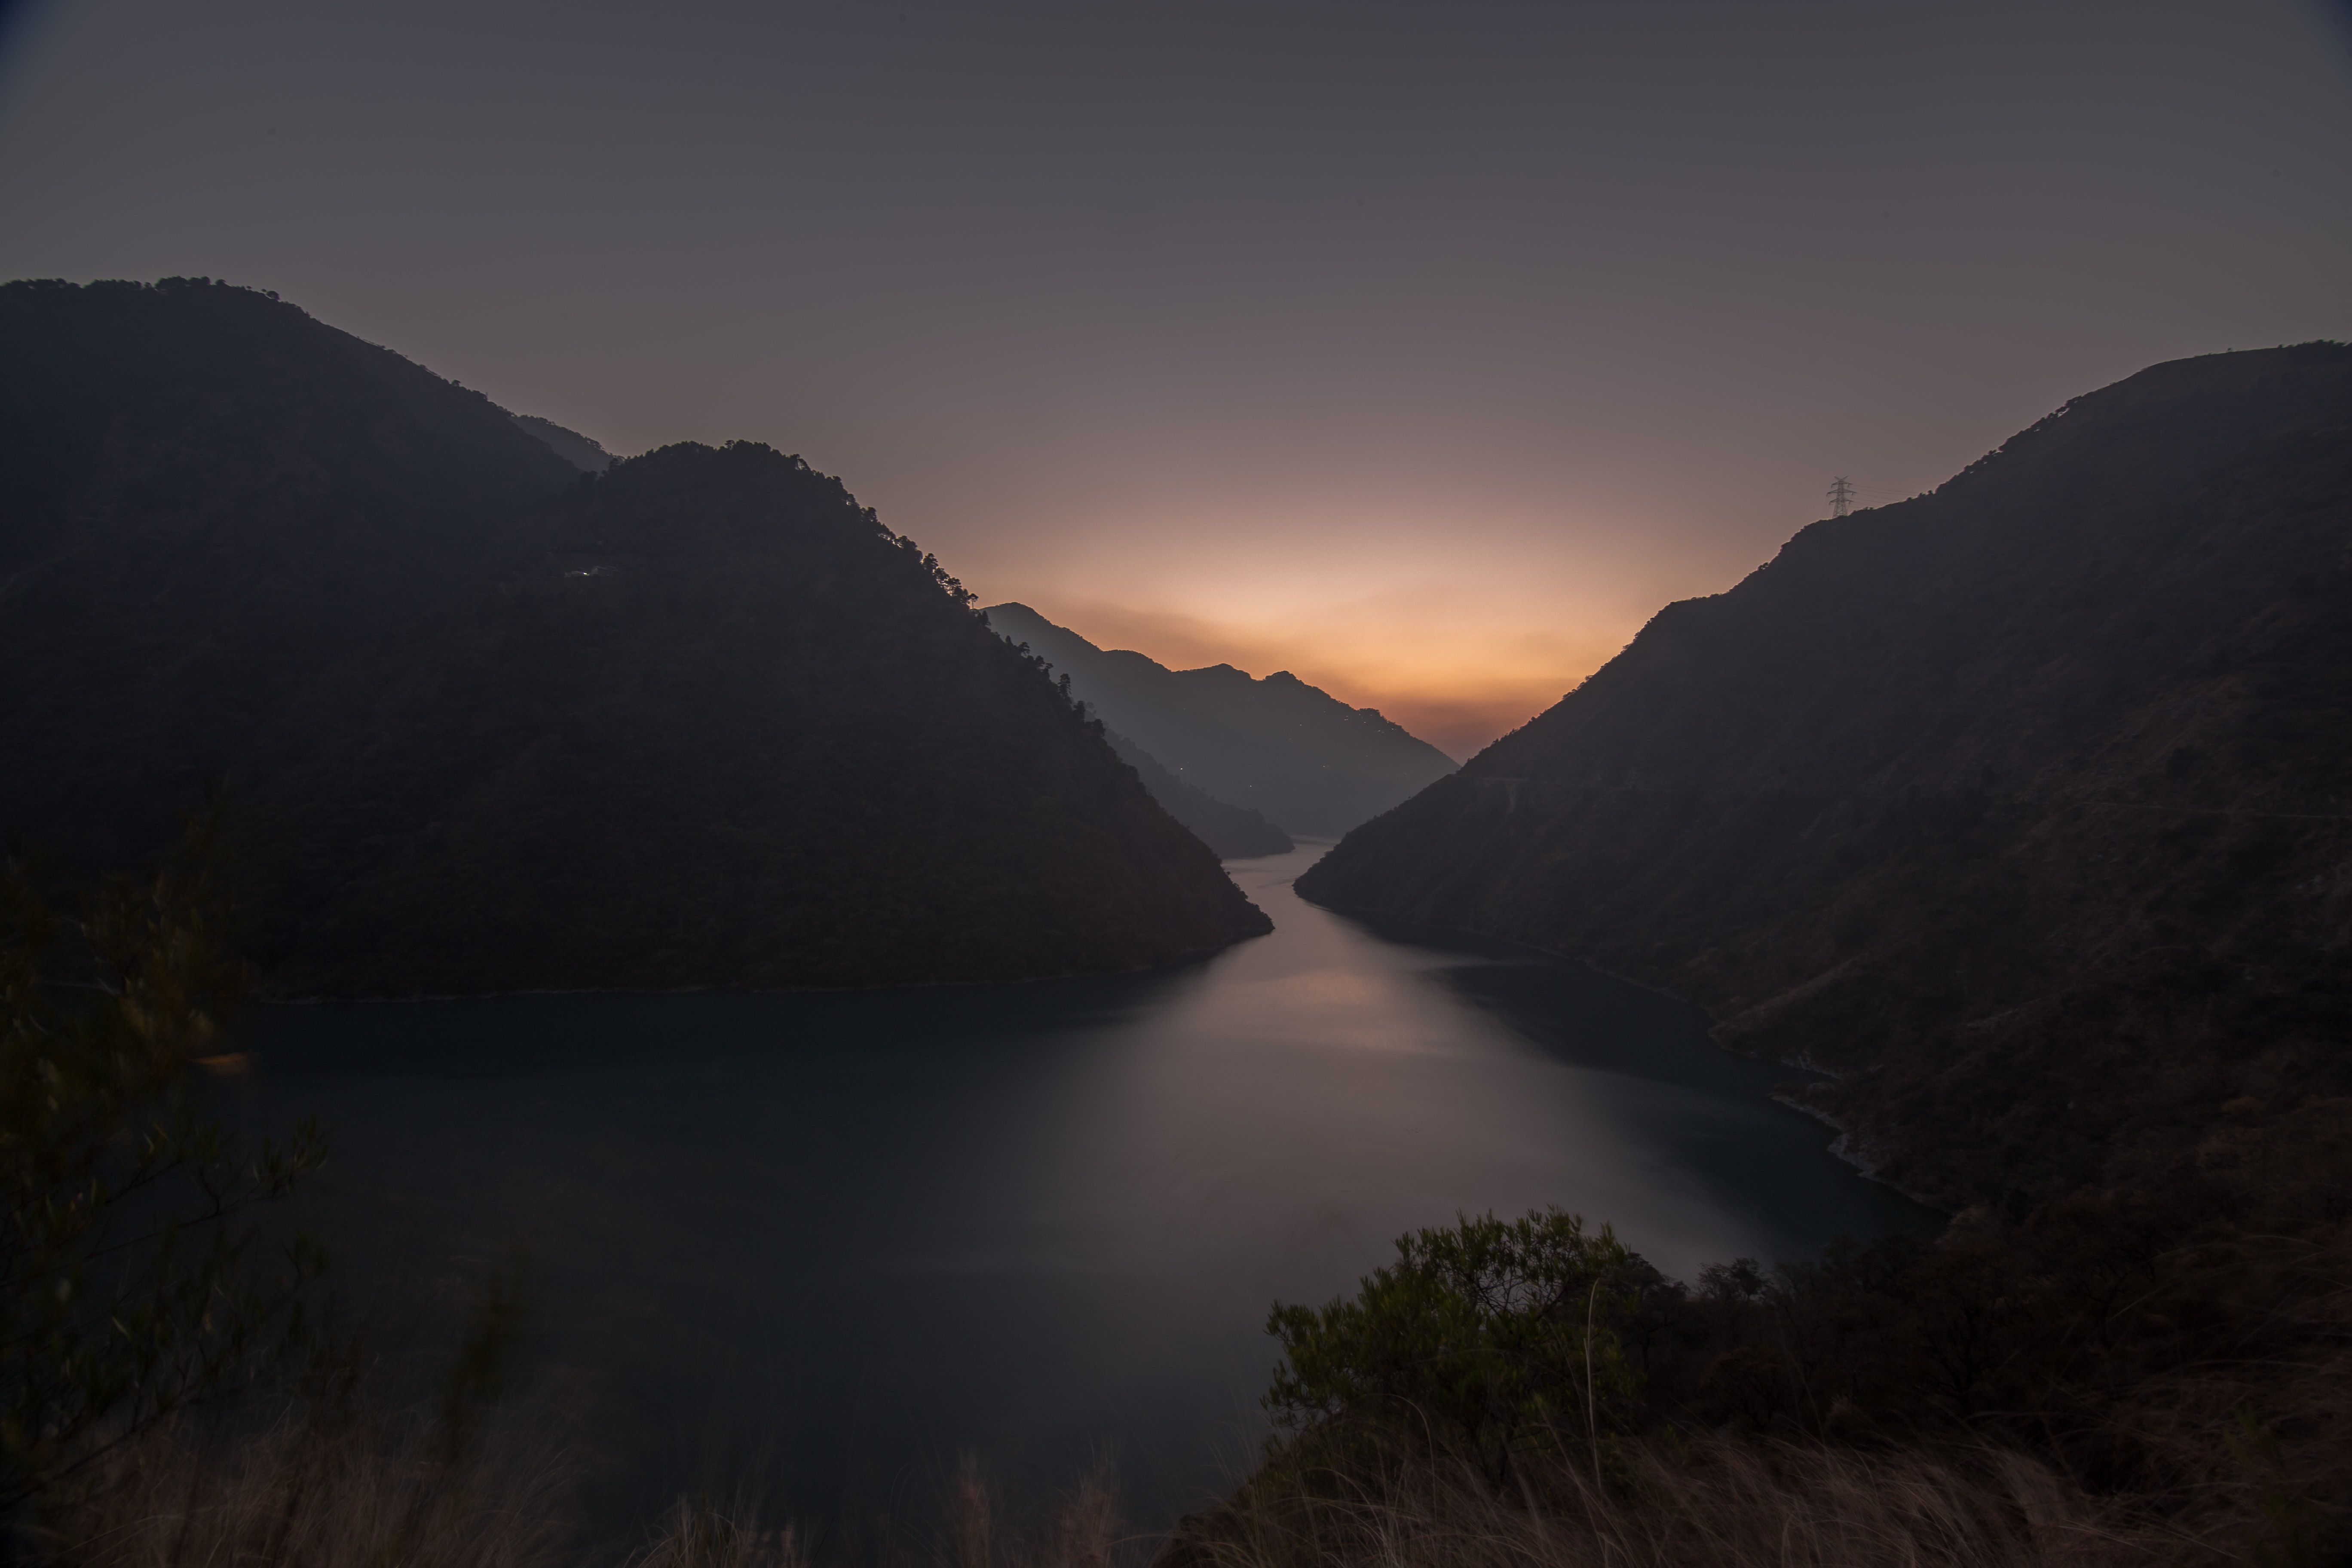 silhouette photo of body of water between mountains